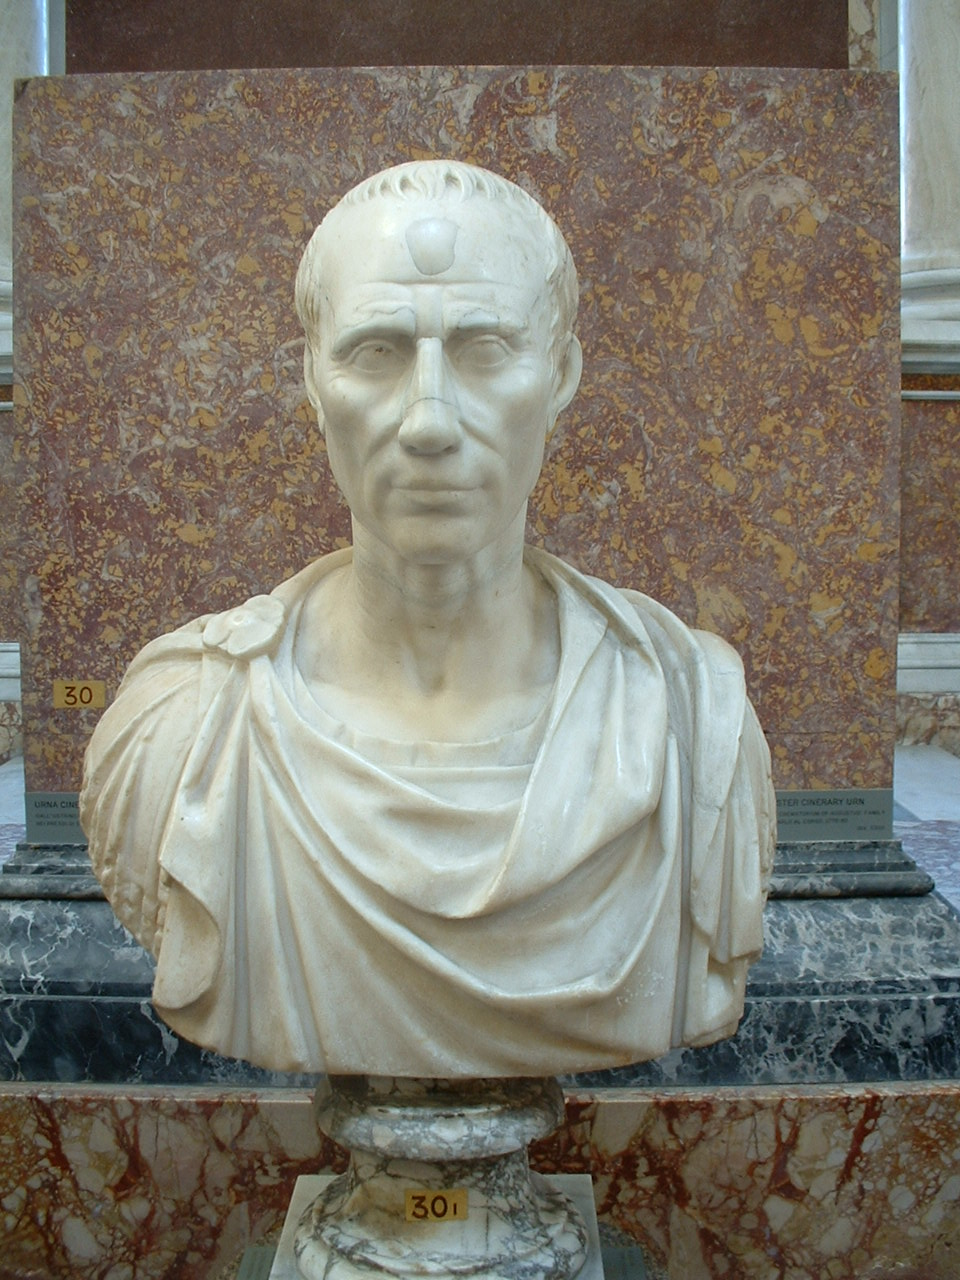 the life and reign of julius caesar Augustus (gaius julius caesar augustus, 23 september 63 bc - 19 august ad 14) was the first and one of the most important roman emperors he led rome in its transition from a republic to a great empire.